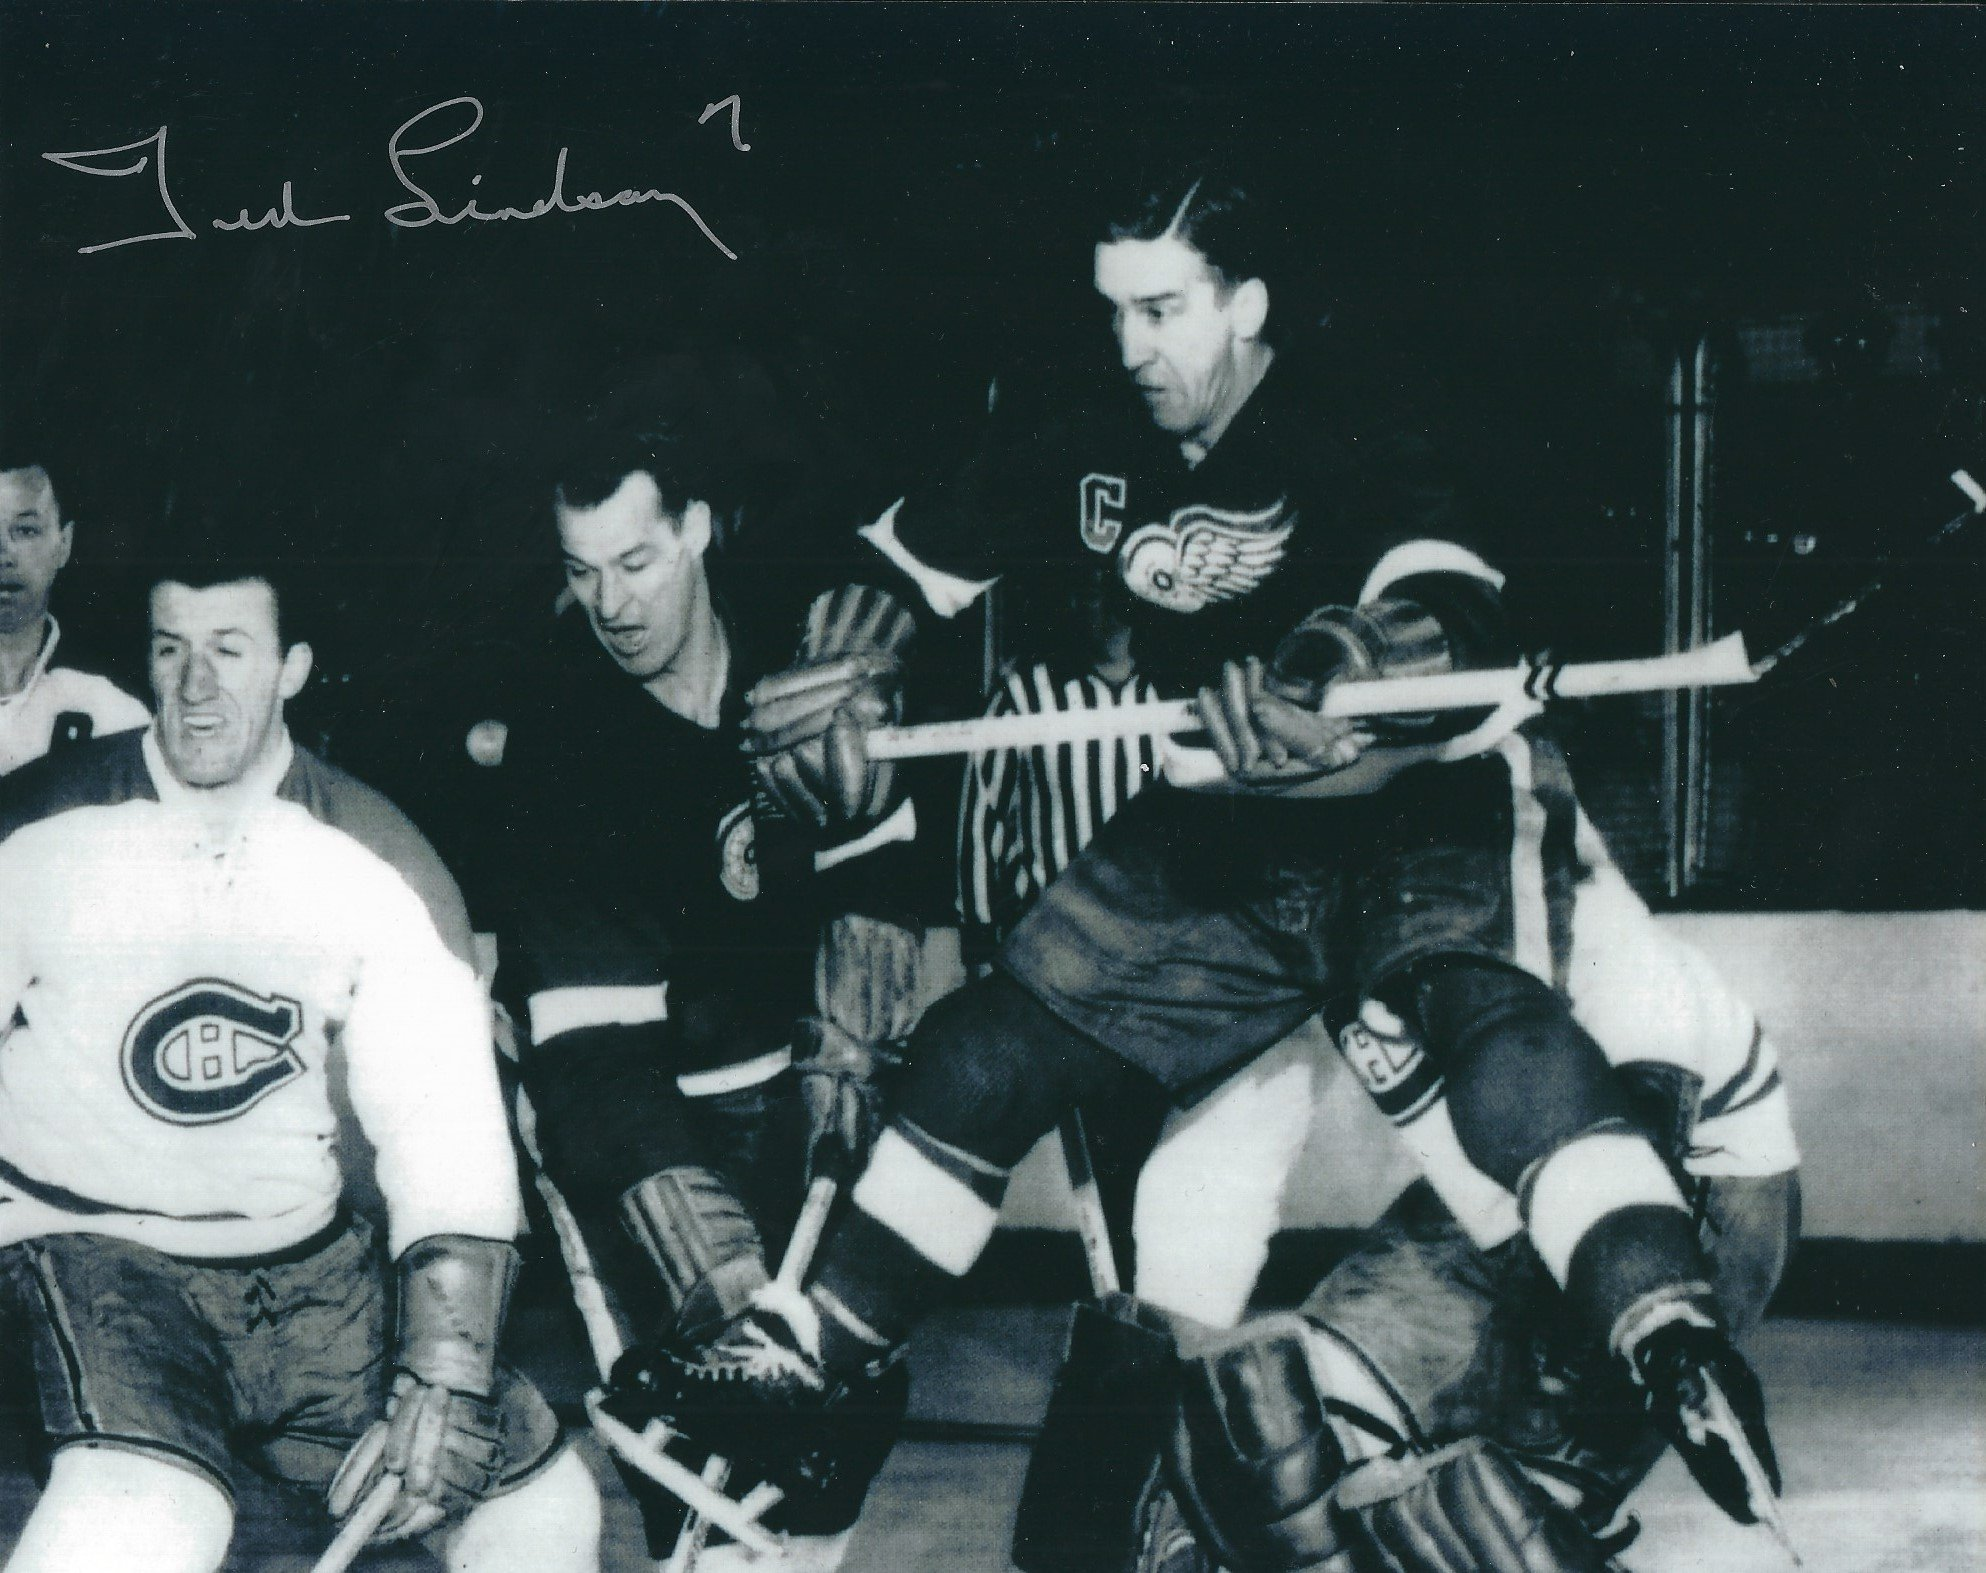 Autographed Ted Lindsay 8x10 Detroit Red Wings Photo